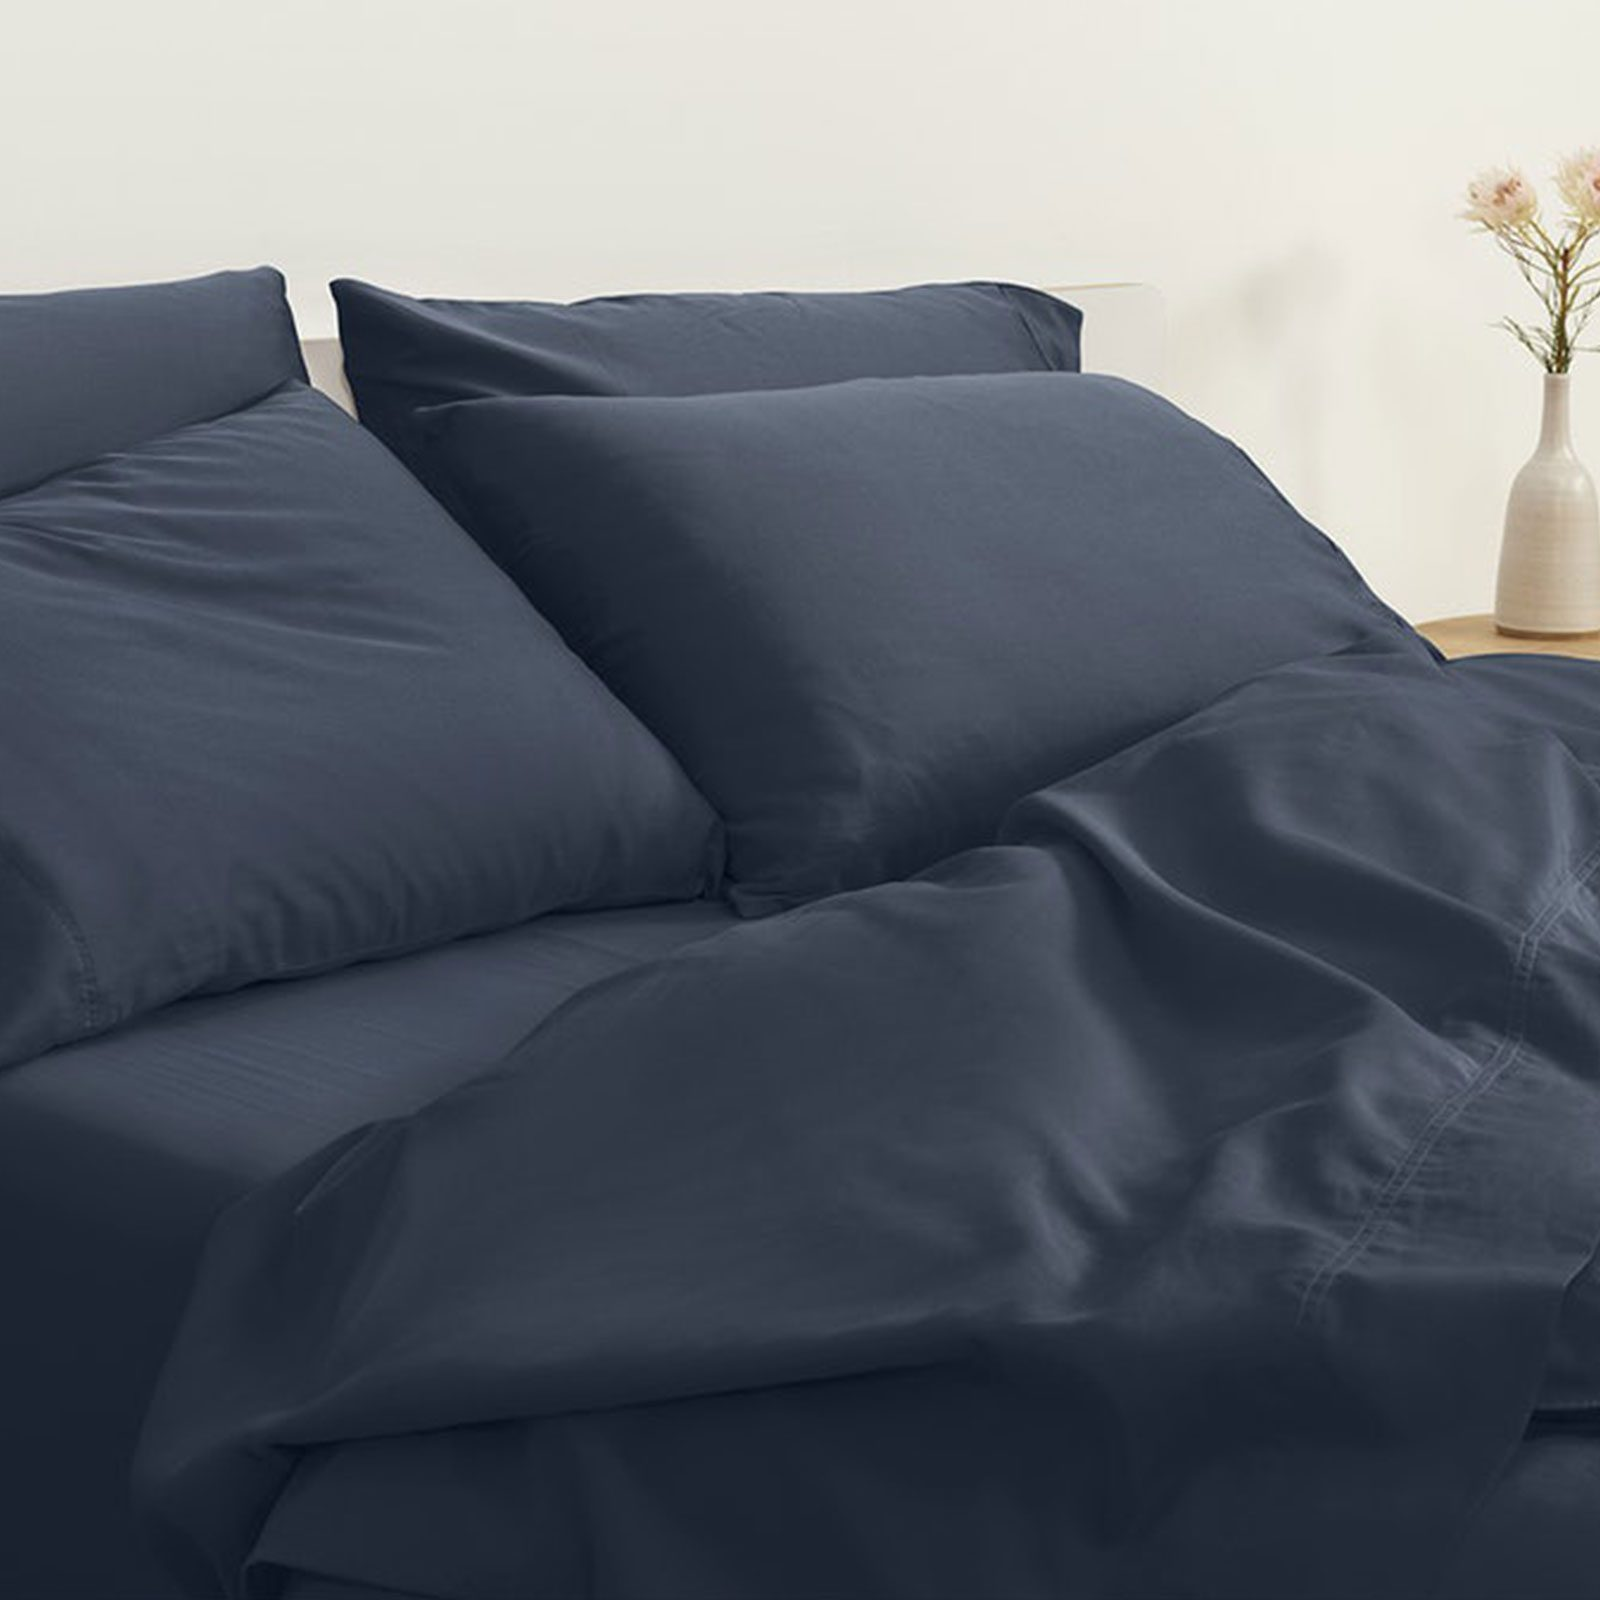 For cozy nights in: Casper Percale Sheets